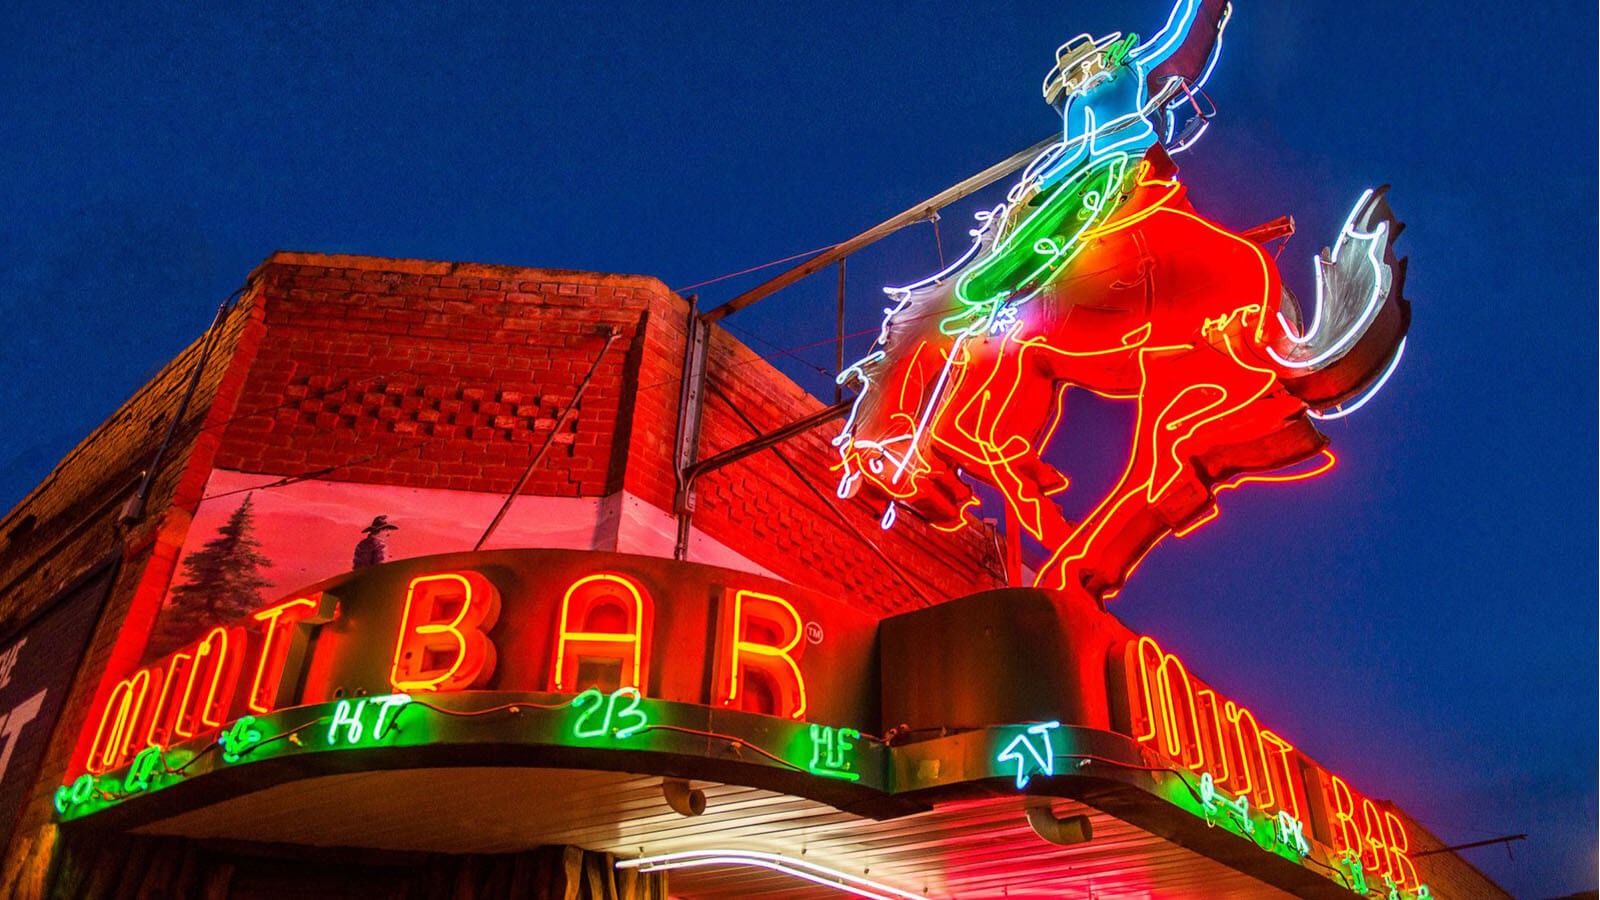 neon sign of the Mint Bar in Sheridan